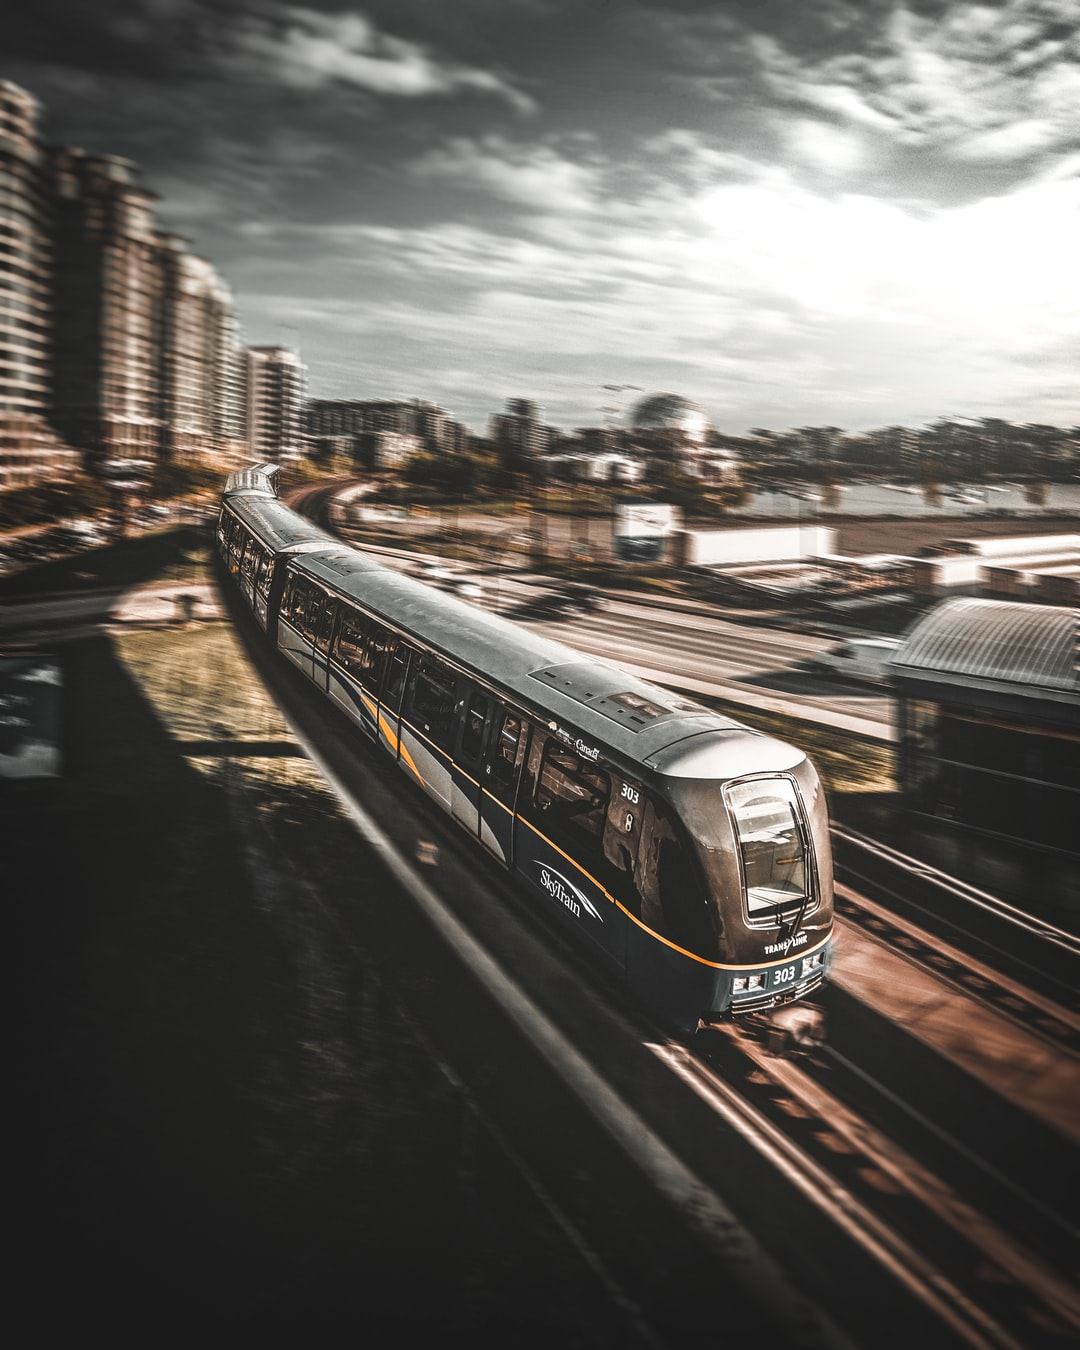 Rapid Regional Transit: What Could Have Been